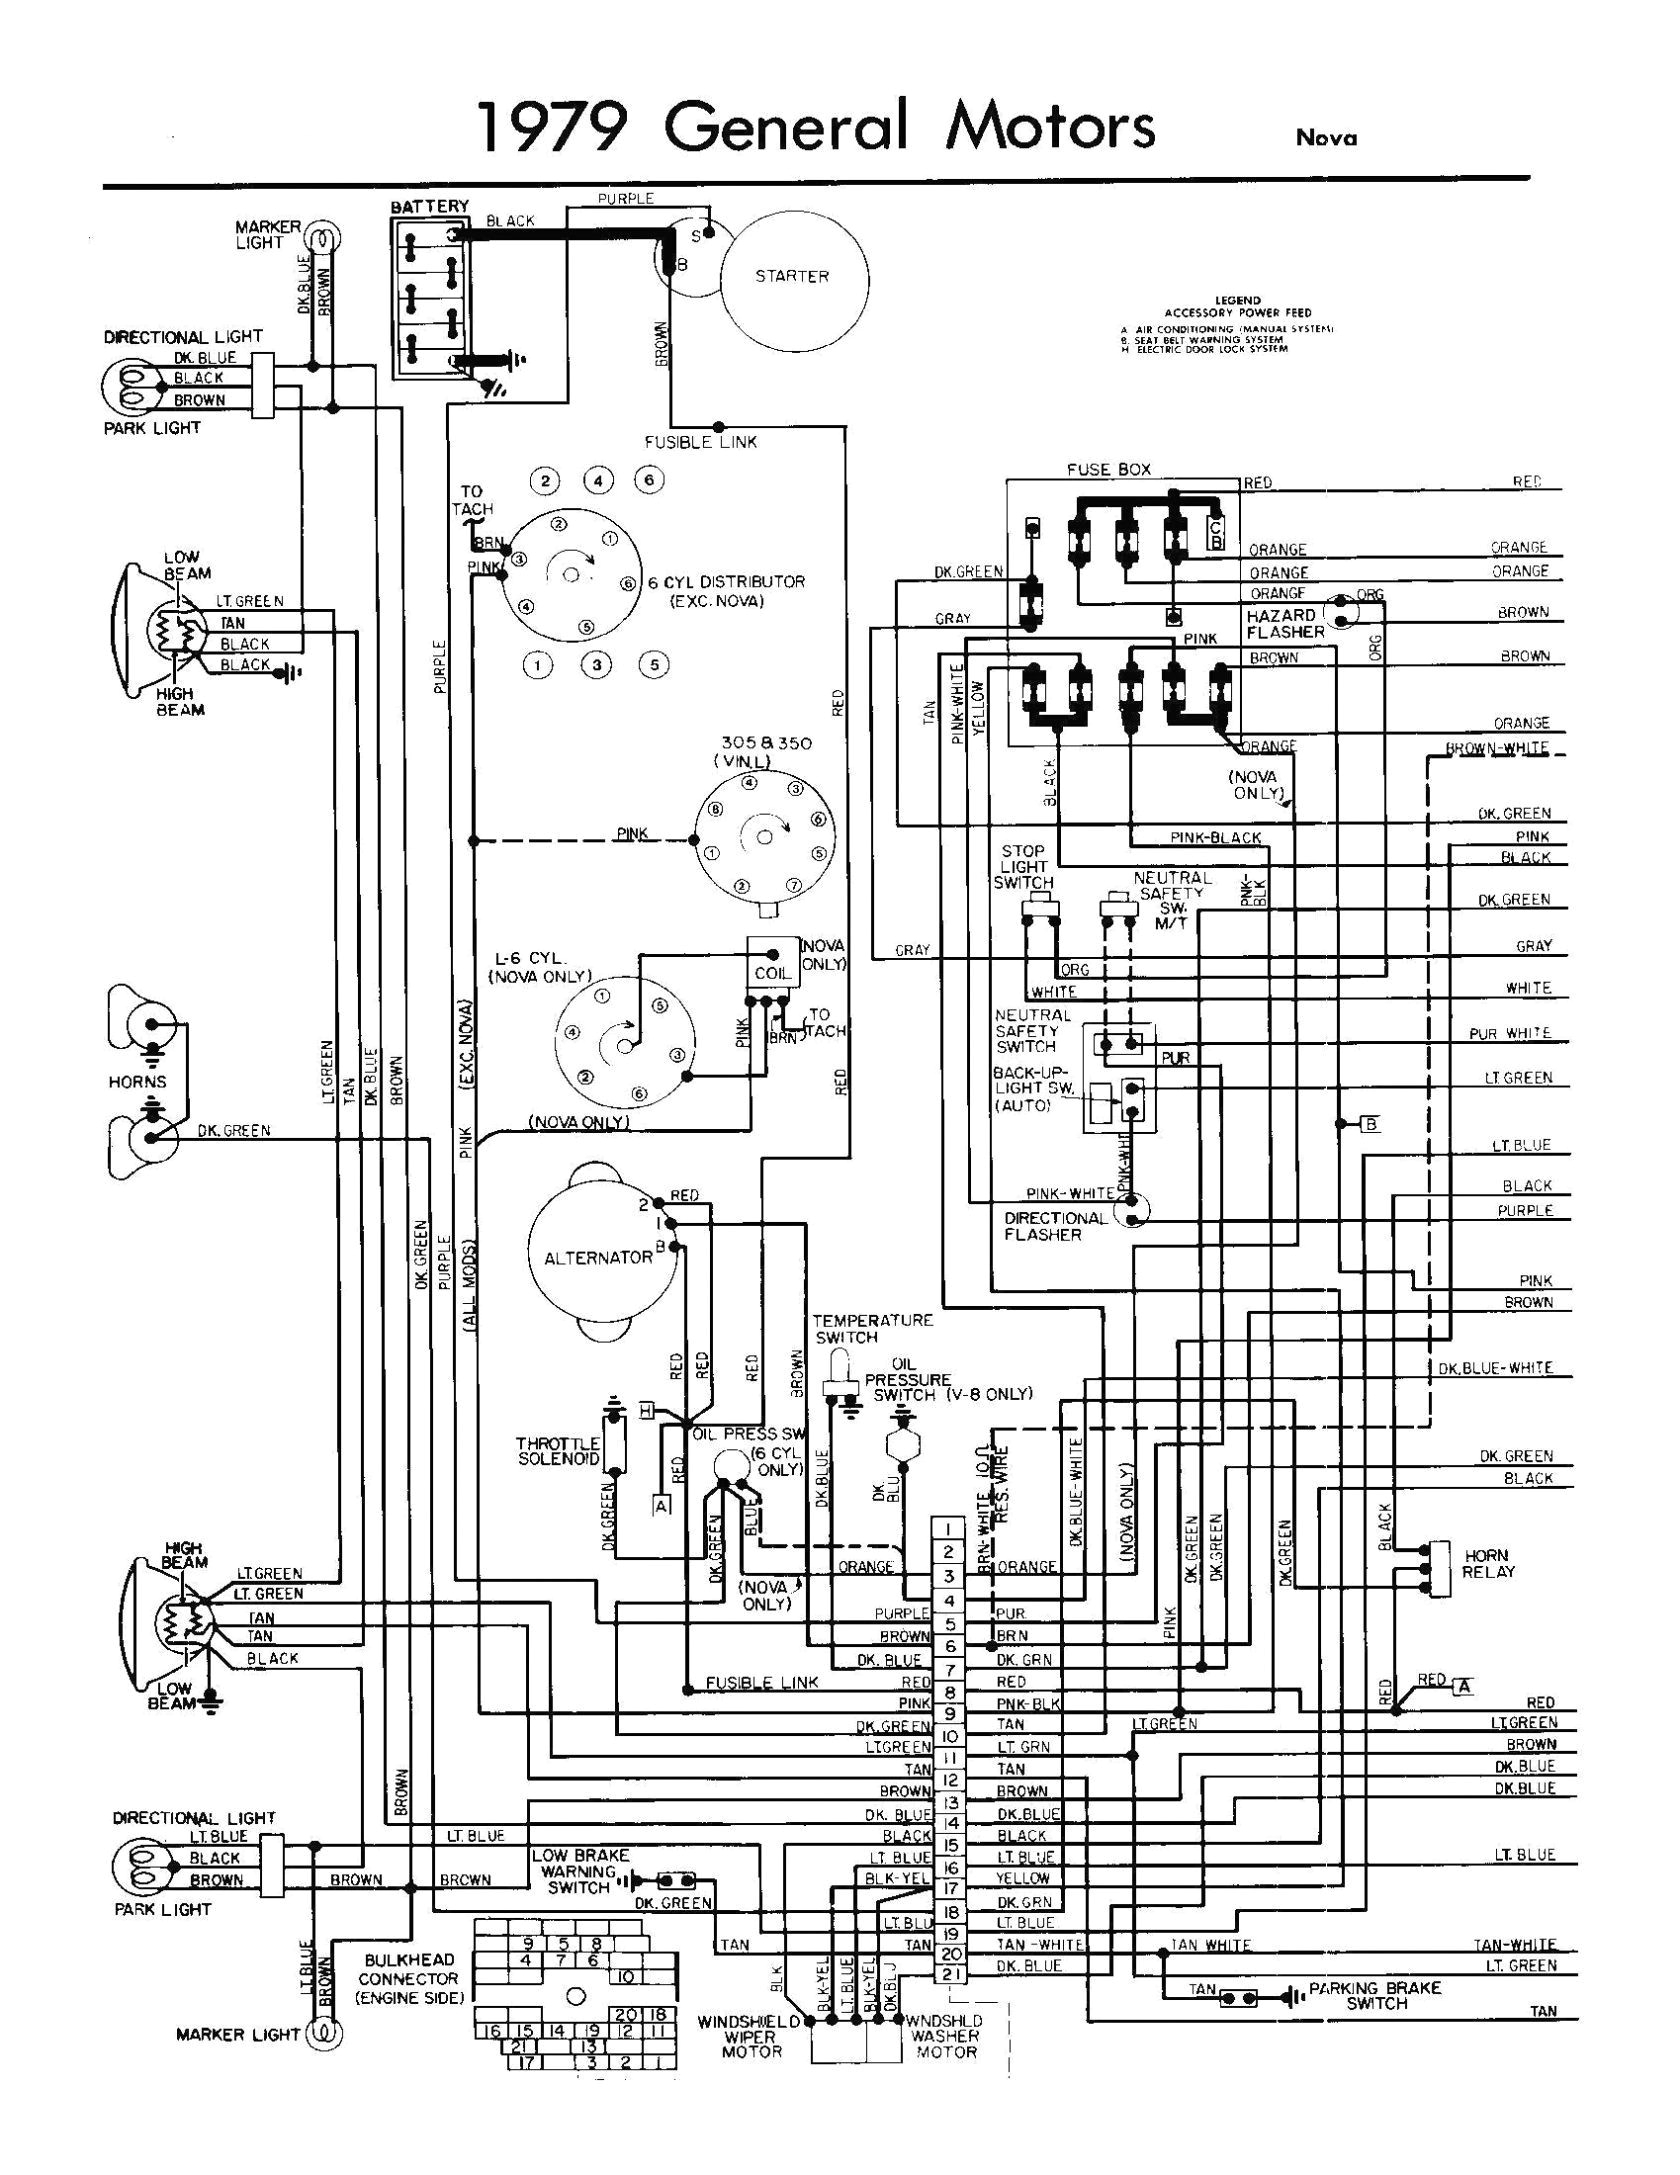 silverado 6 0 belt diagram wiring diagram option chevy 6 0 pulley diagram